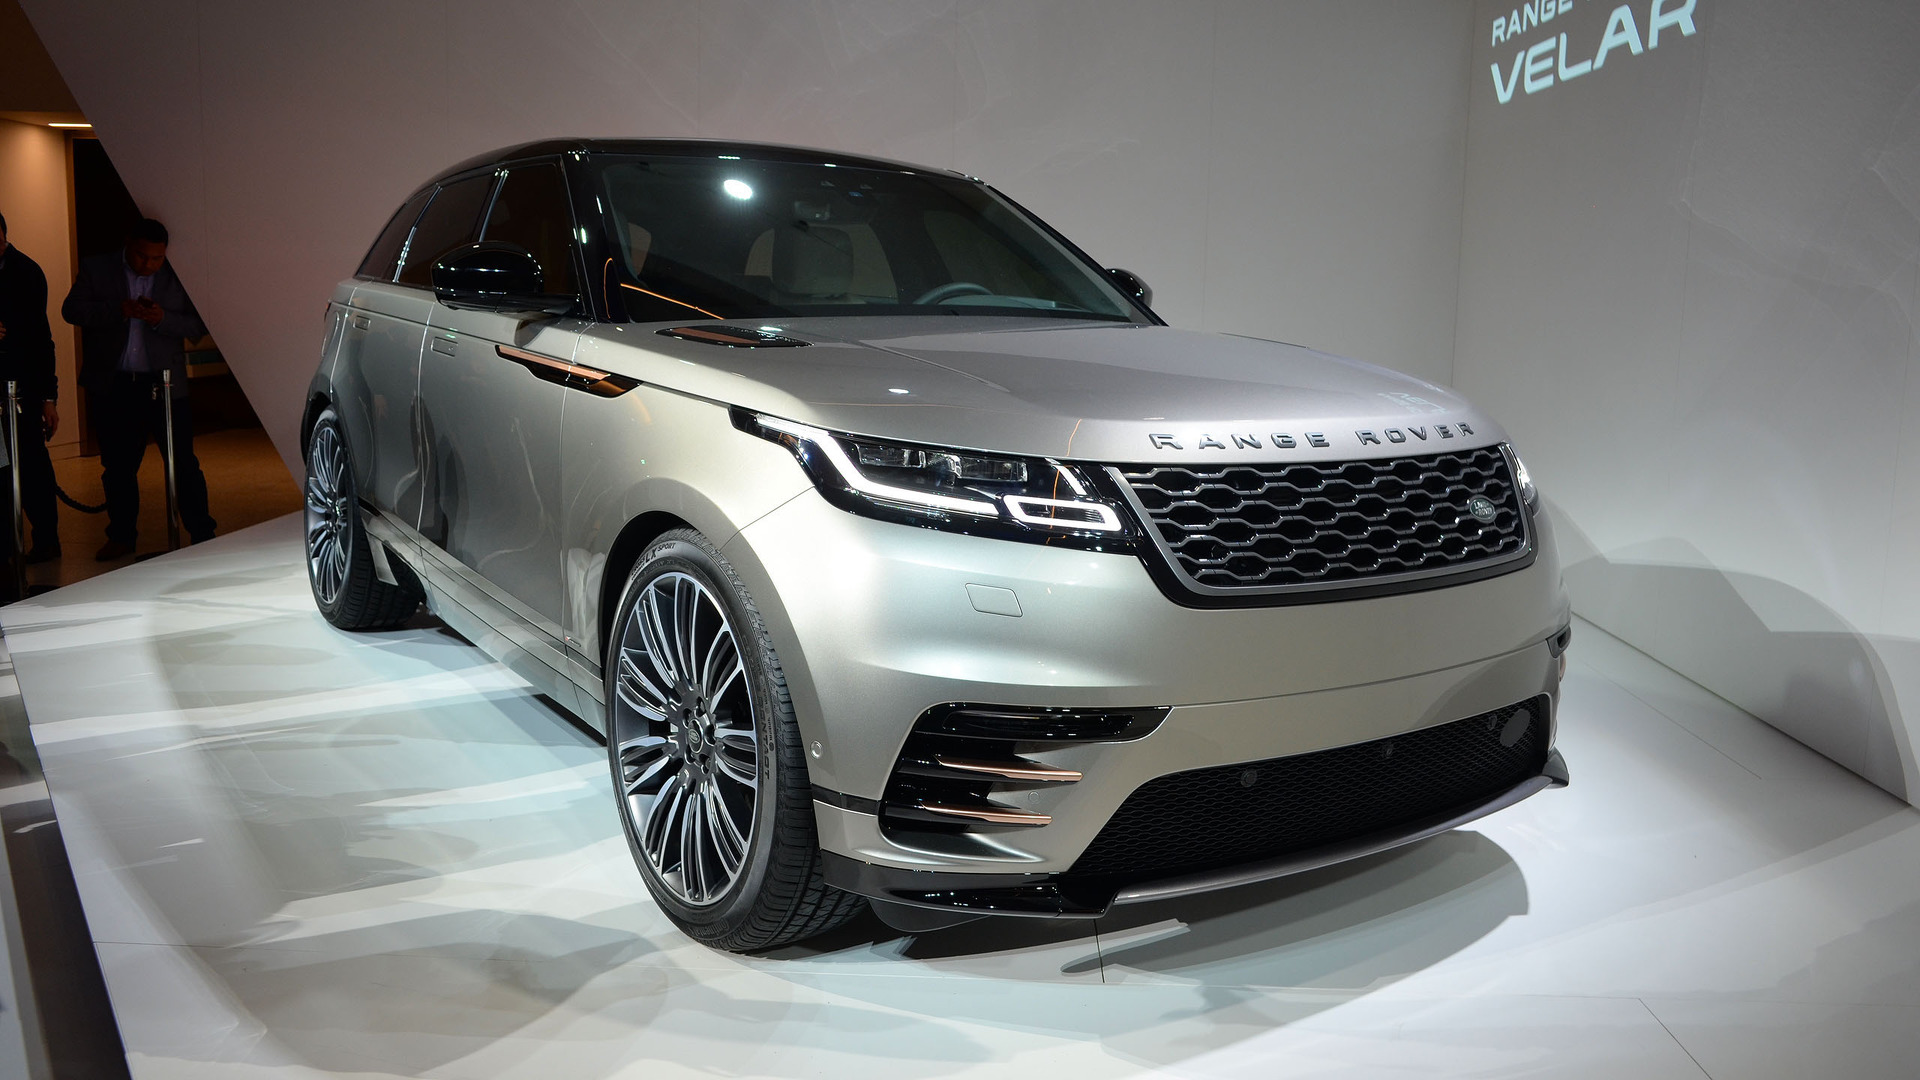 Best Diesel Suv >> Land Rover Range Rover Velar coupe-SUV arrives this summer for $50,895